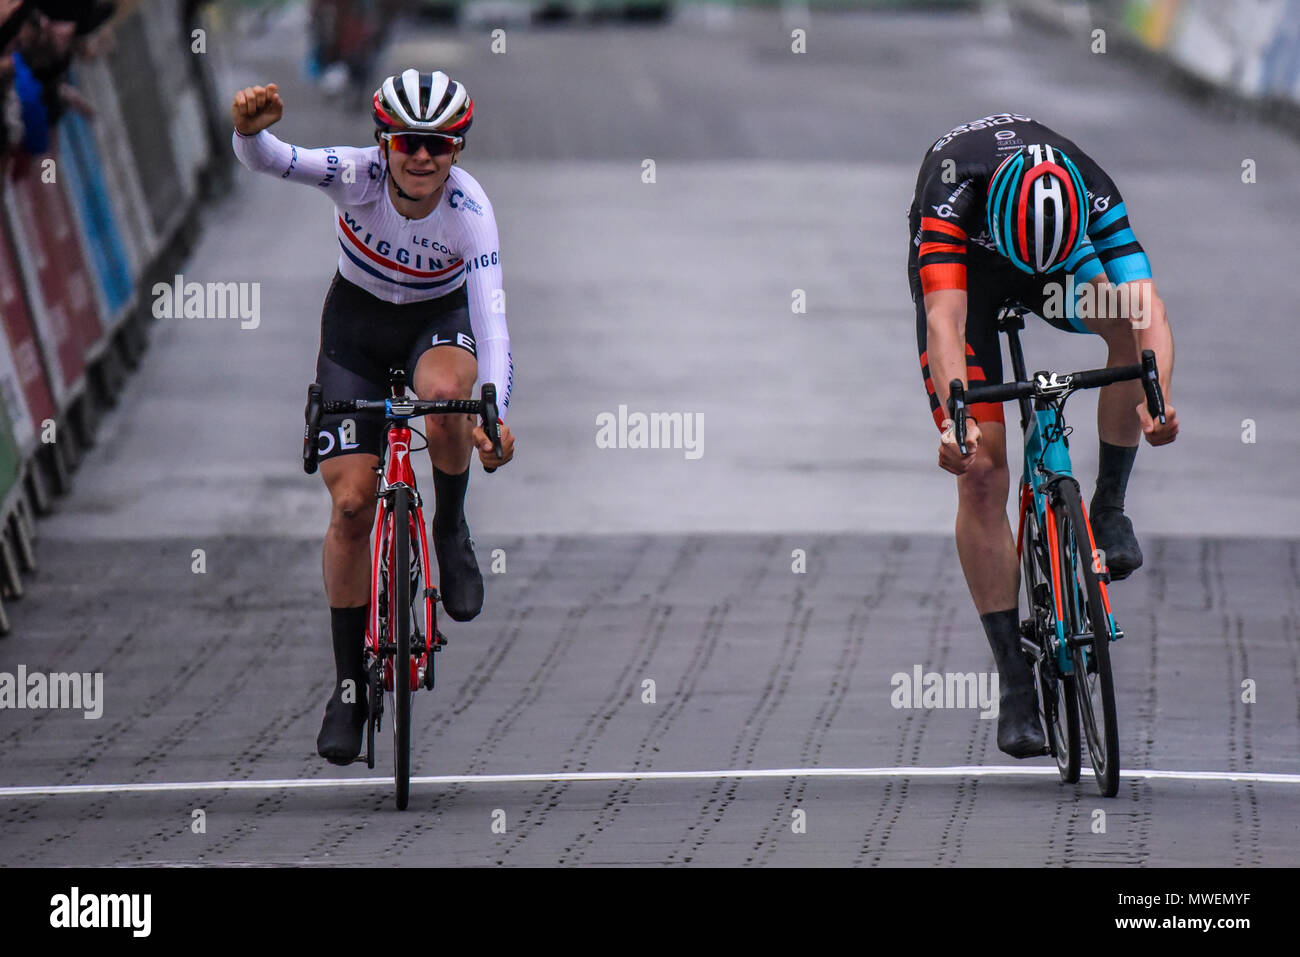 tom-pidcock-wiggins-beats-connor-swift-on-the-line-in-elite-mens-2018-ovo-energy-tour-series-cycle-race-at-wembley-london-uk-round-7-bike-race-MWEMYF.jpg